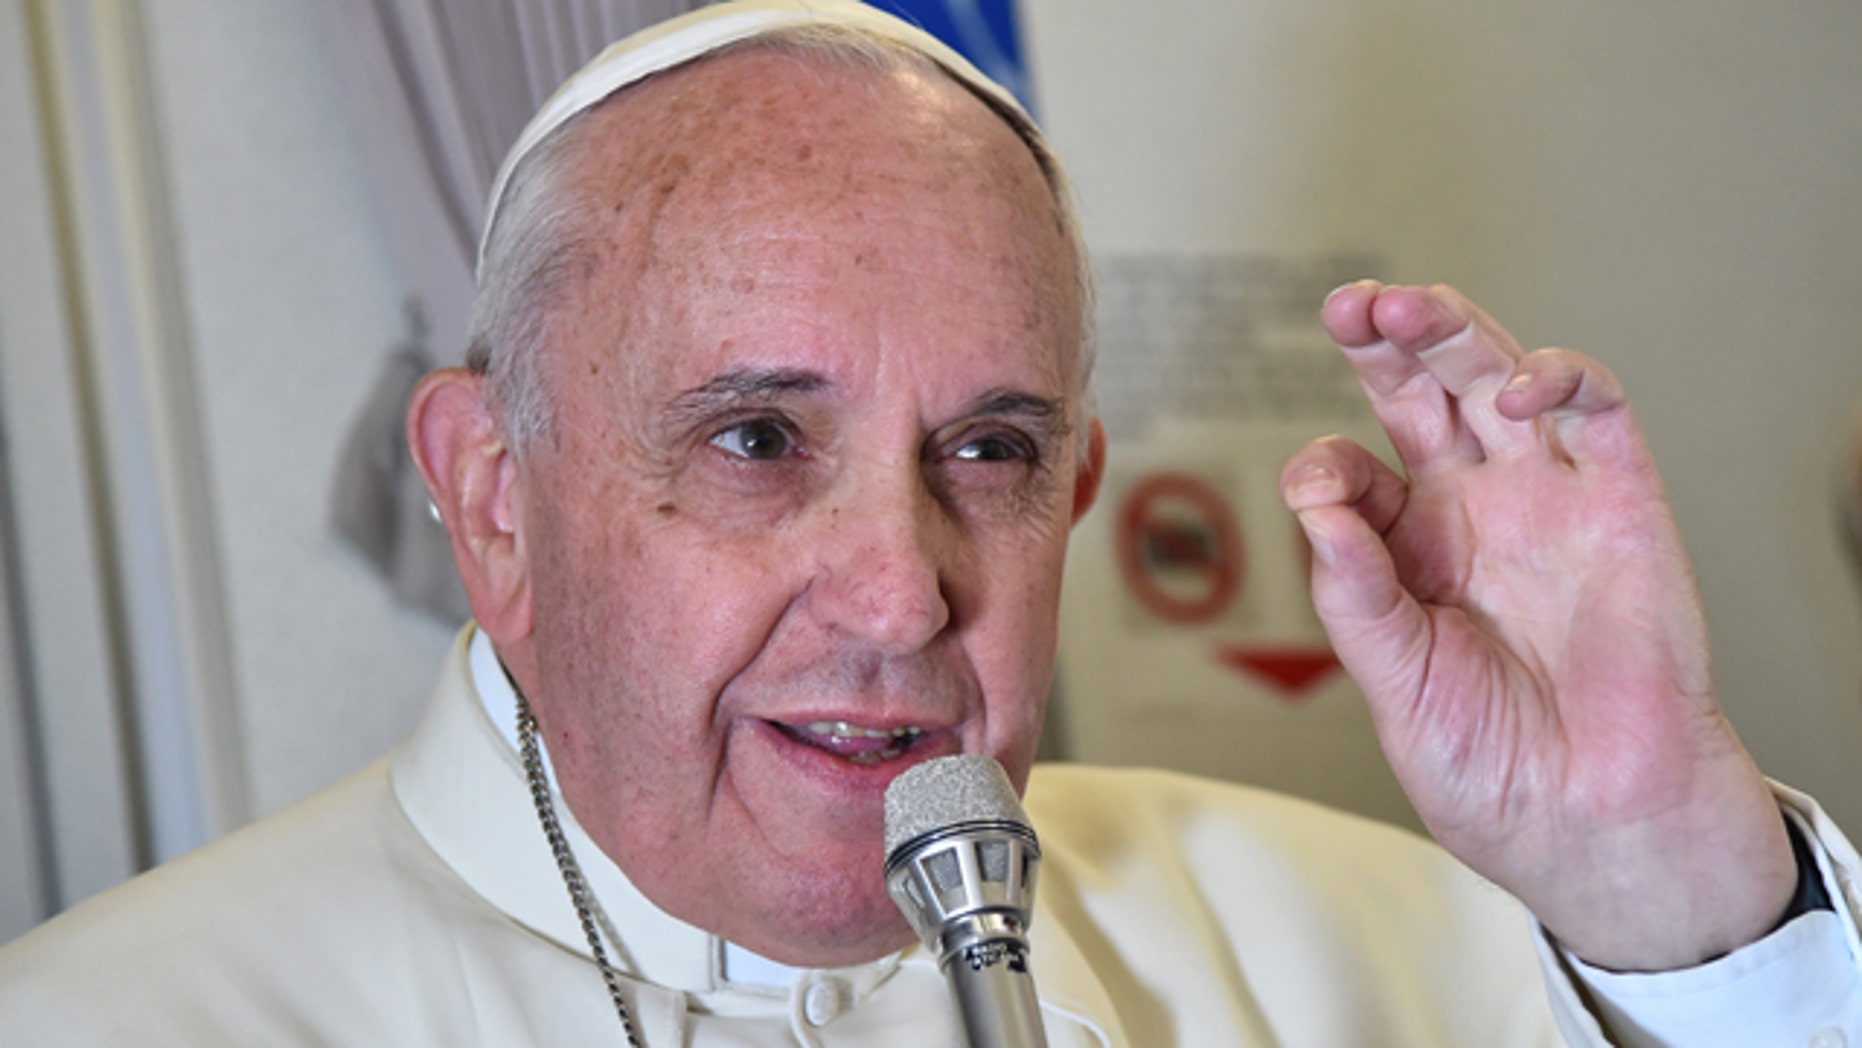 Jan. 19, 2015: Pope Francis gestures as he talks with journalists during his flight from Manila to Rome. (AP Photo/Giuseppe Cacace, pool)